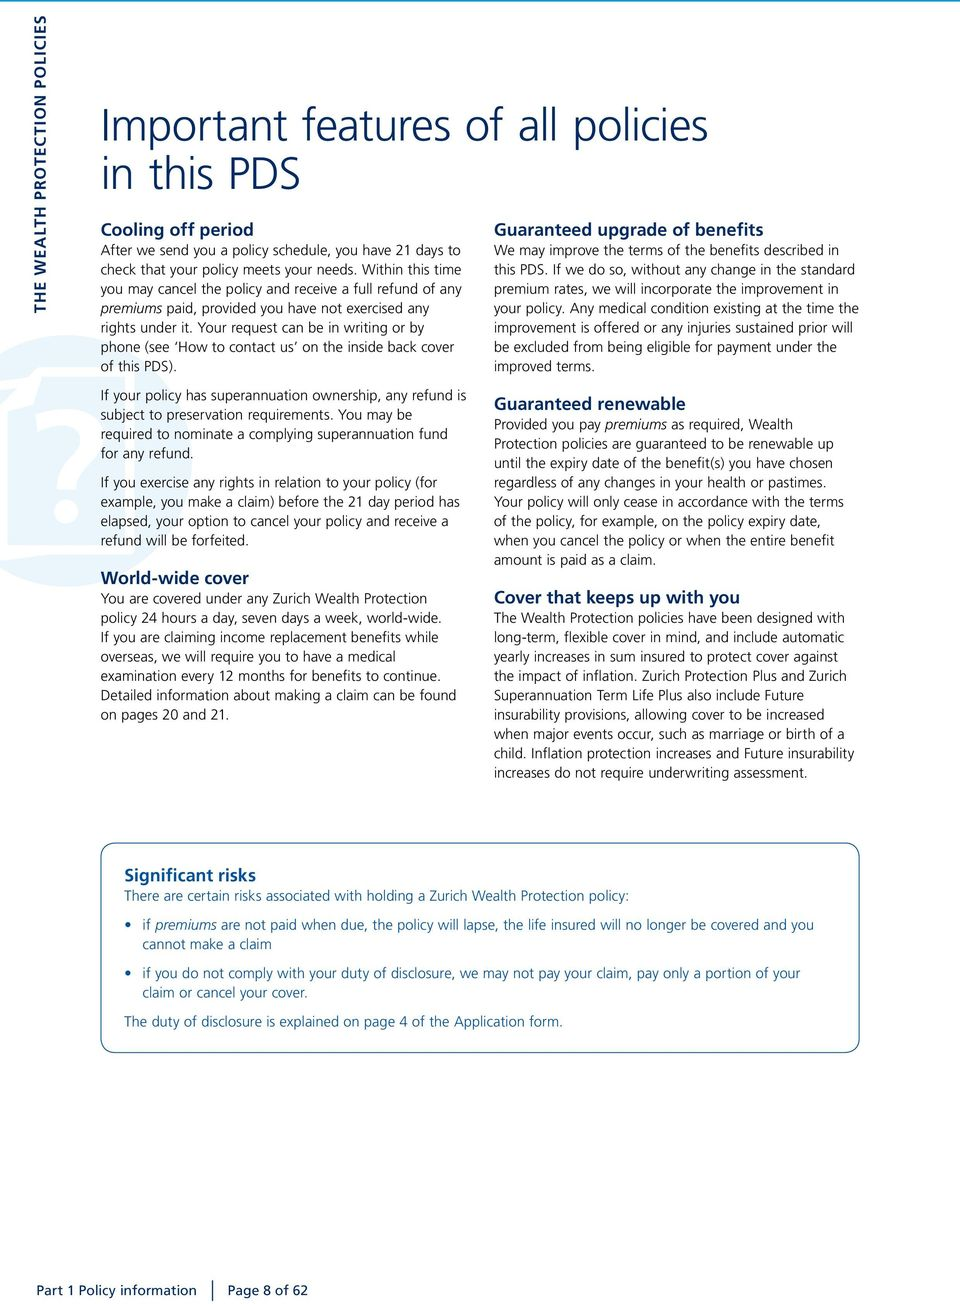 Your request can be in writing or by phone (see How to contact us on the inside back cover of this PDS). Guaranteed upgrade of benefits We may improve the terms of the benefits described in this PDS.